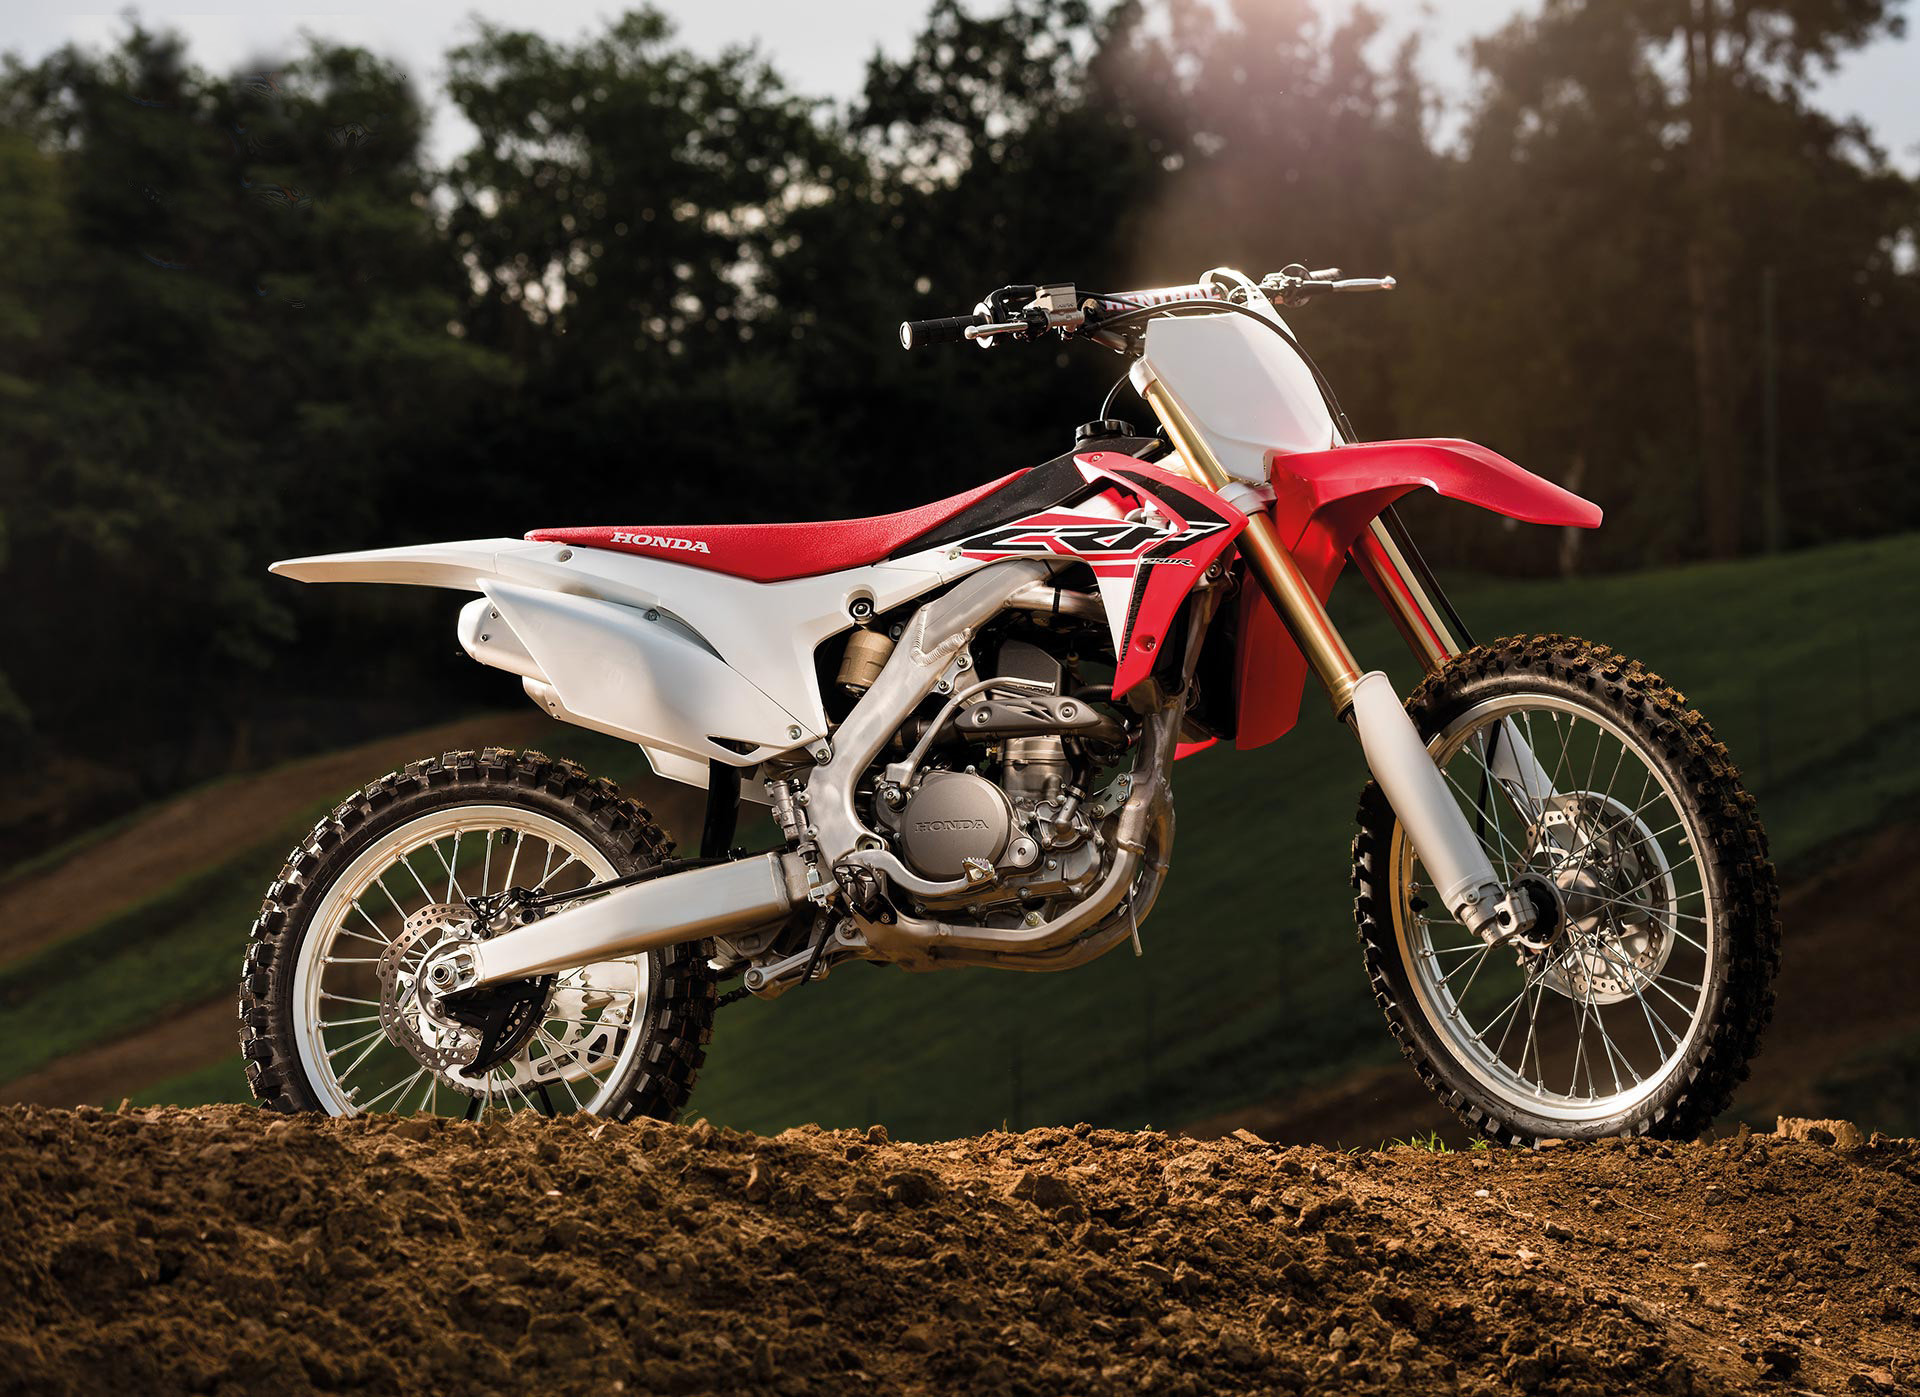 2015 Honda CRF450R Wallpapers: Find best latest 2015 Honda CRF450R  Wallpapers in HD for your